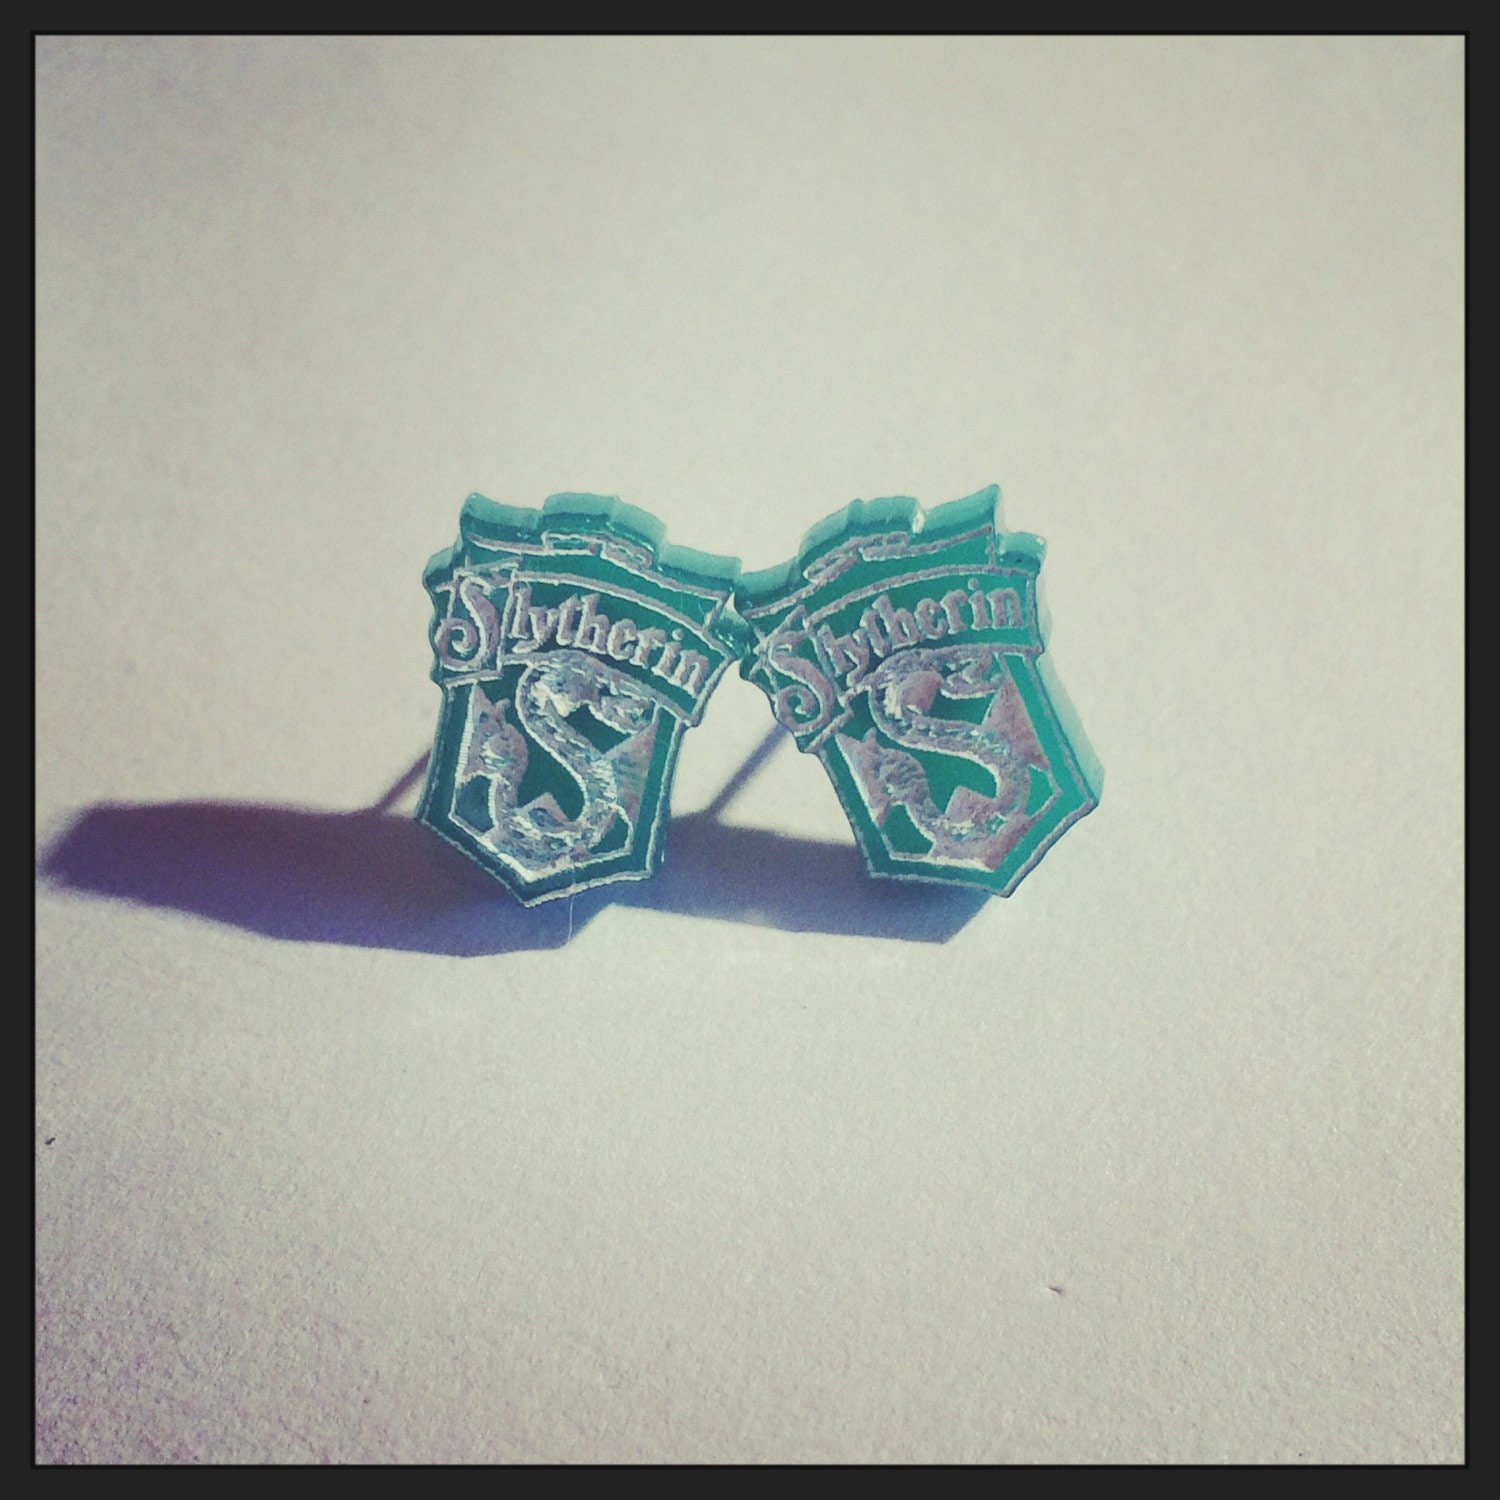 Harry Potter Slytherin Hogwarts Inspired House Badge Earrings